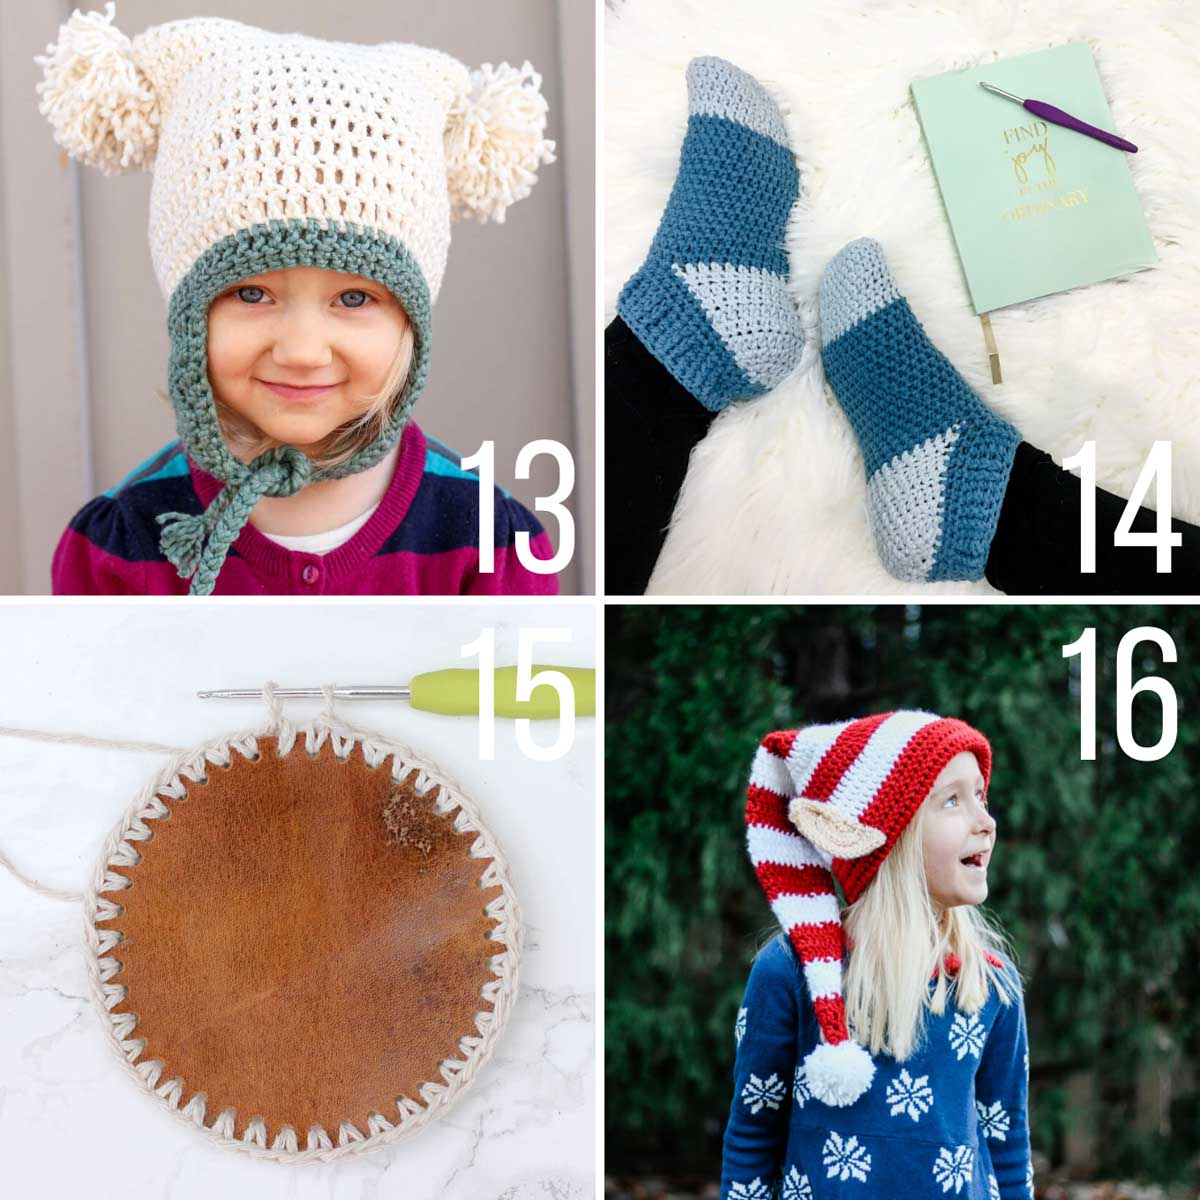 Easy crochet patterns for Christmas including an Santa's elf hat, leather crochet coasters and a pom pom beanie.